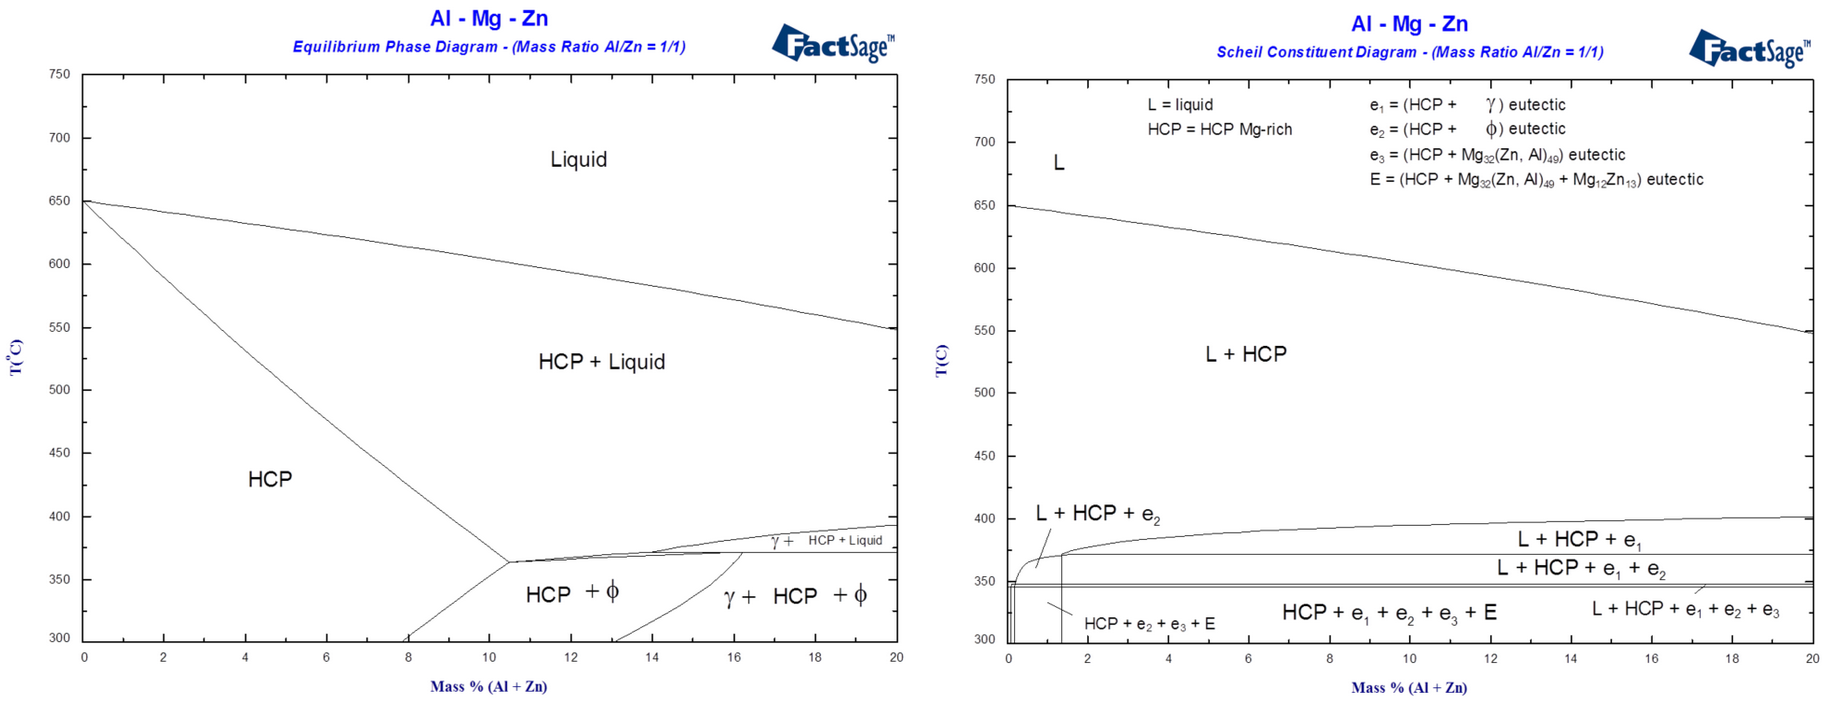 Whats new in phase diagram diagrams of the al mg zn ternary system for mg rich alloys at constant mass ratio alzn 11 1 calculated phase diagram and equilibrium solidification ccuart Image collections